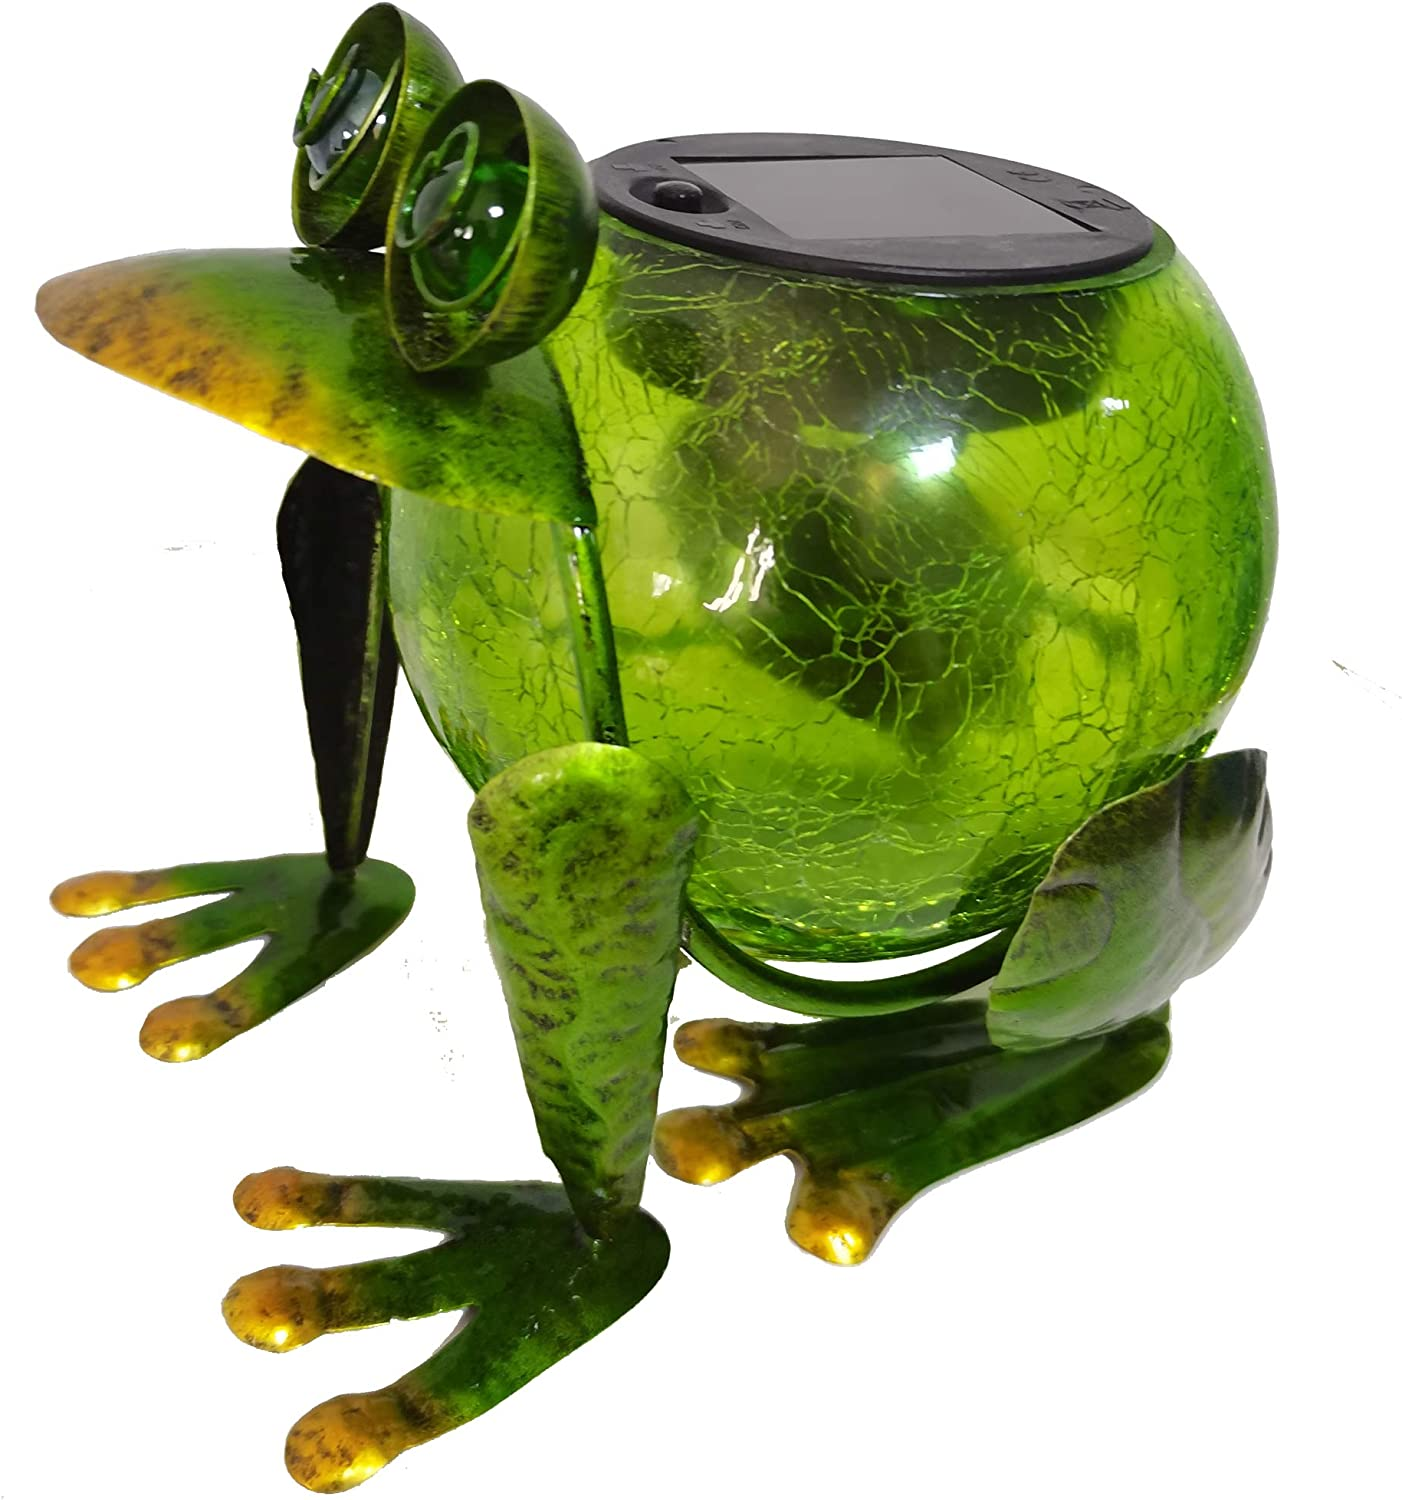 Yard Décor Frog Solar Light Iron Ornament Garden Decor Waterproof Outdoor Decorations for Patio Tabletop LED Lantern